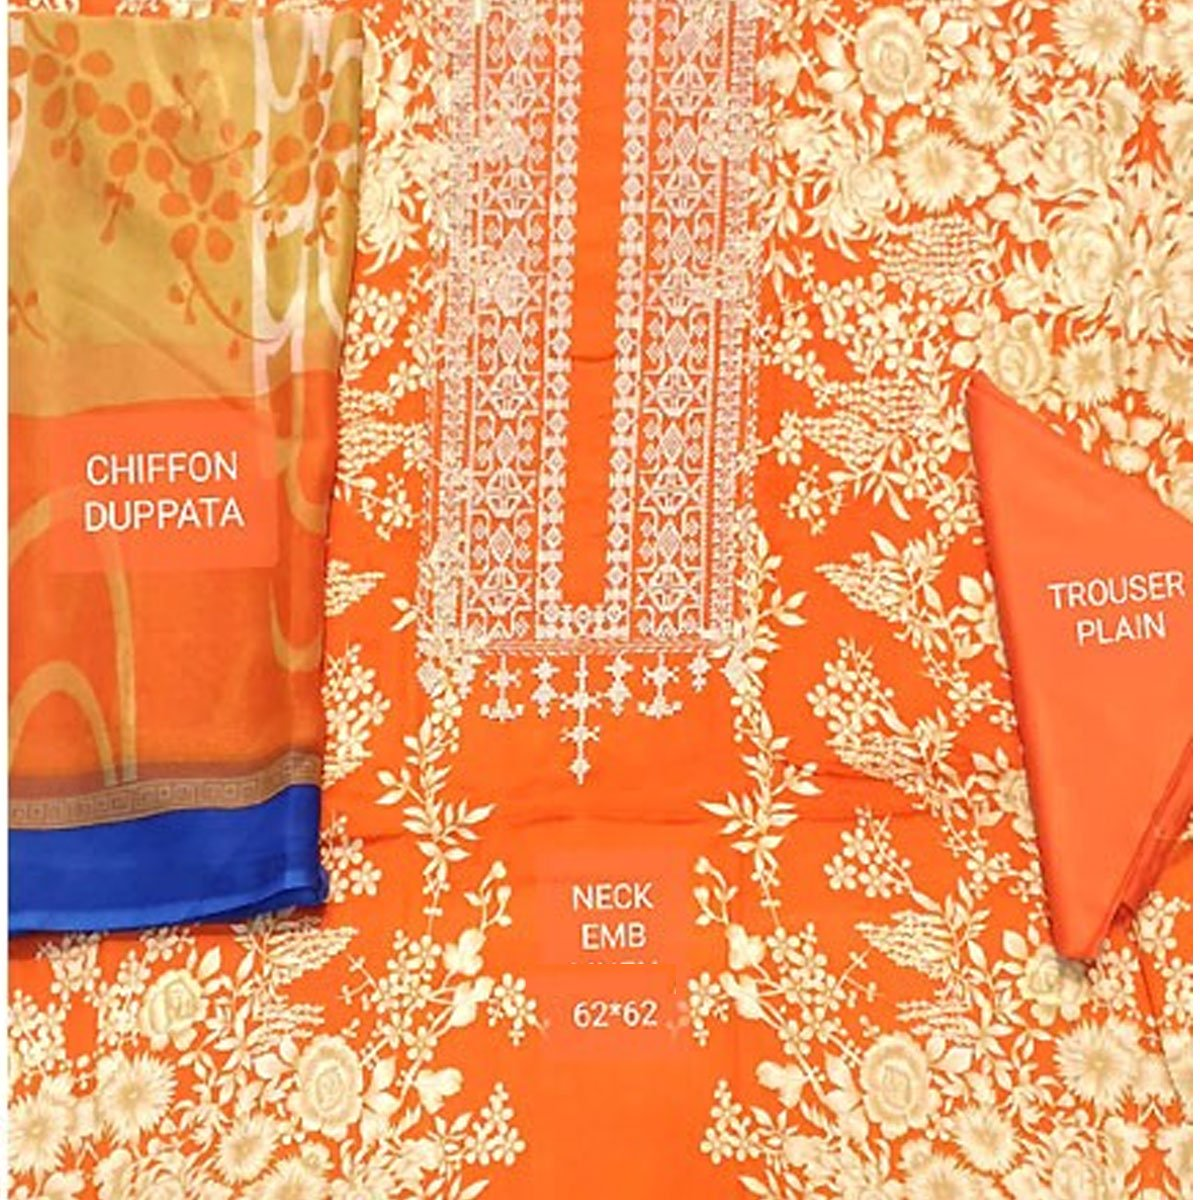 Pack OF 2 - Designer Lawn Embroidered Dress With Chiffon Dupatta (DRL-346) & (DRL-324) Gallery Image 1